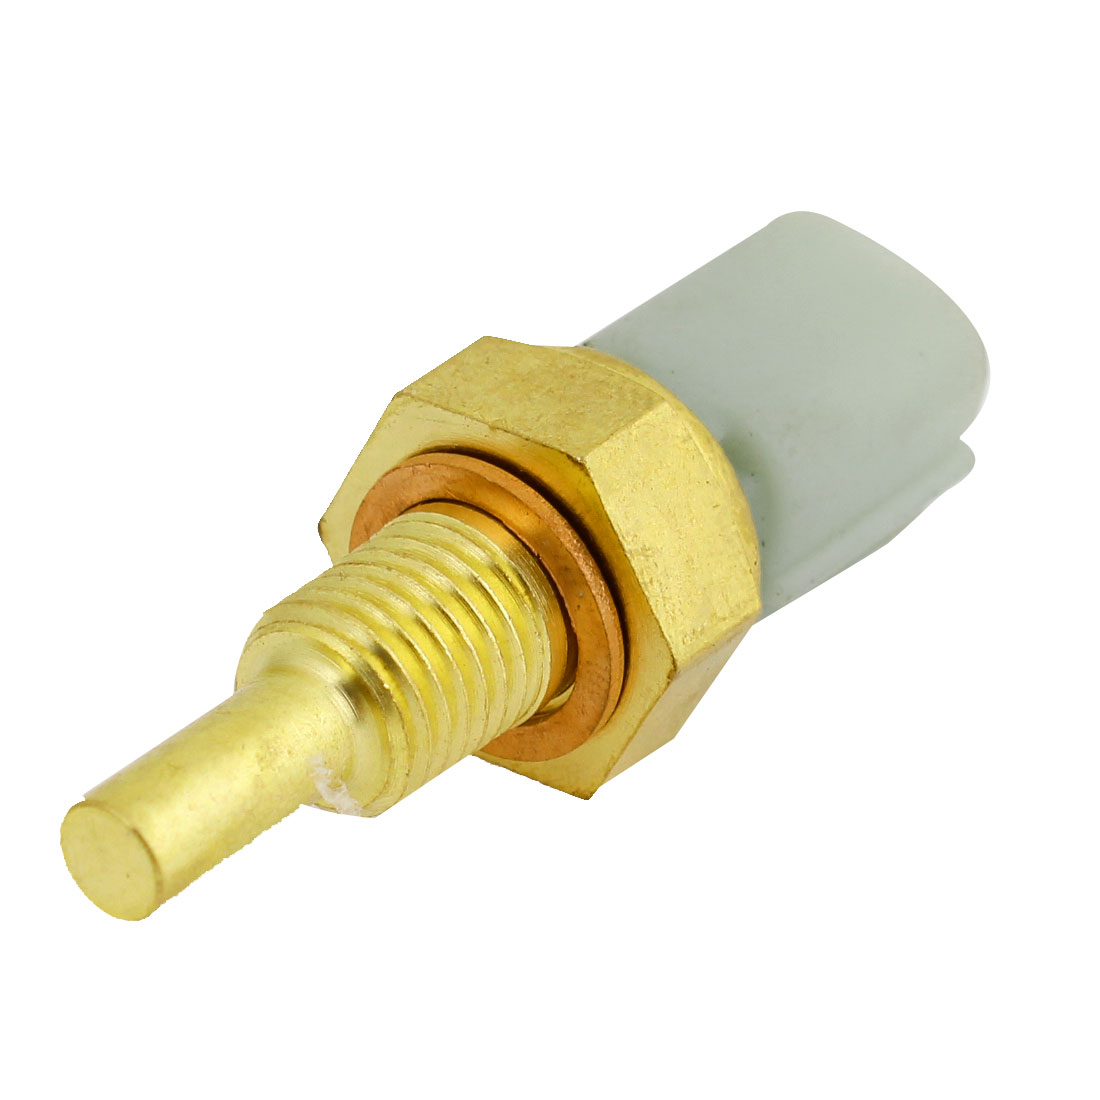 37870-RWC-A01 Car Water Temp Engine Coolant Temperature Sensor Sender